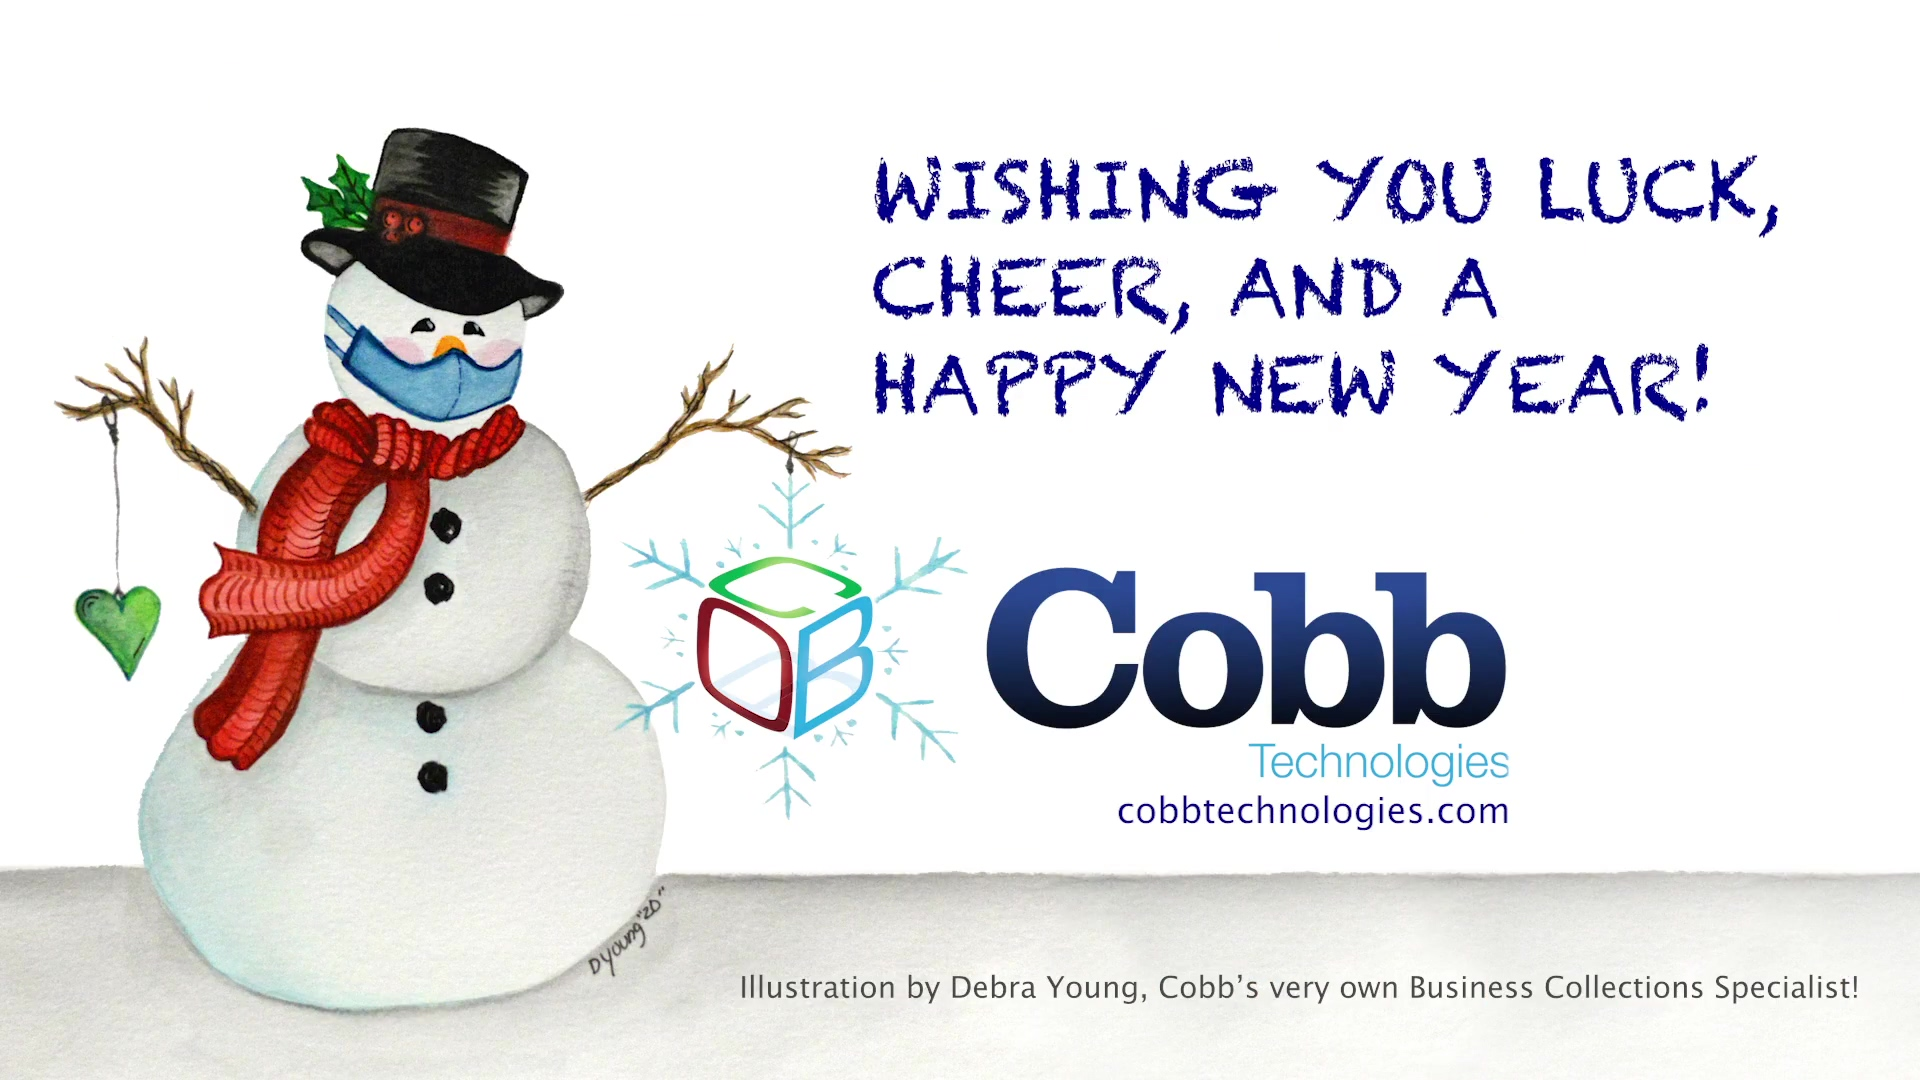 Happy Holidays From Our Cobb Family to Yours